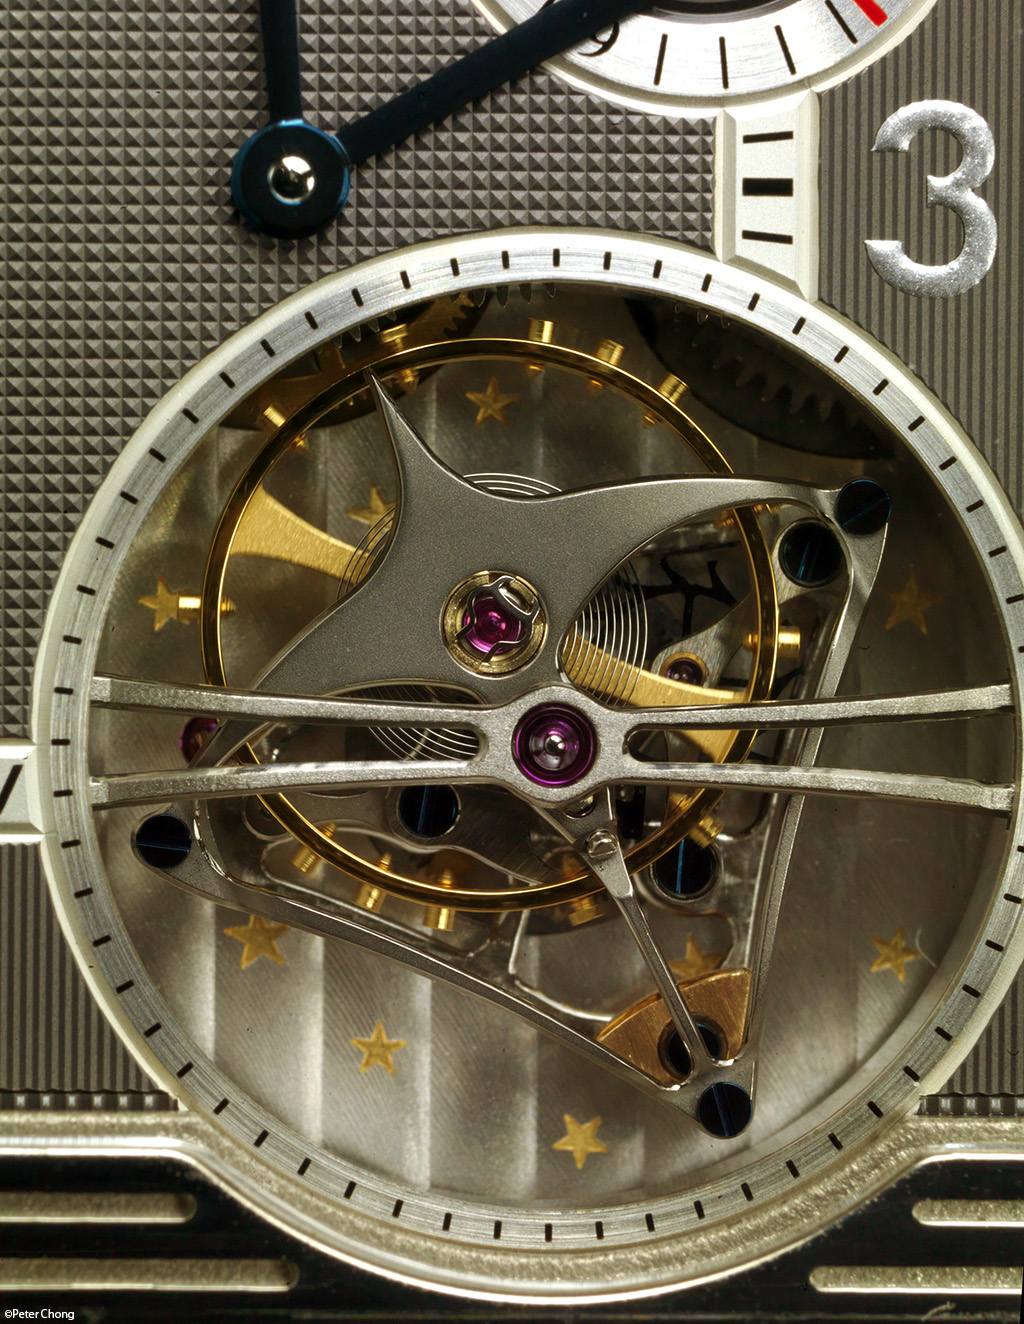 The Jaeger LeCoultre Triptyque Grand Complication, showing detail of the tourbillon